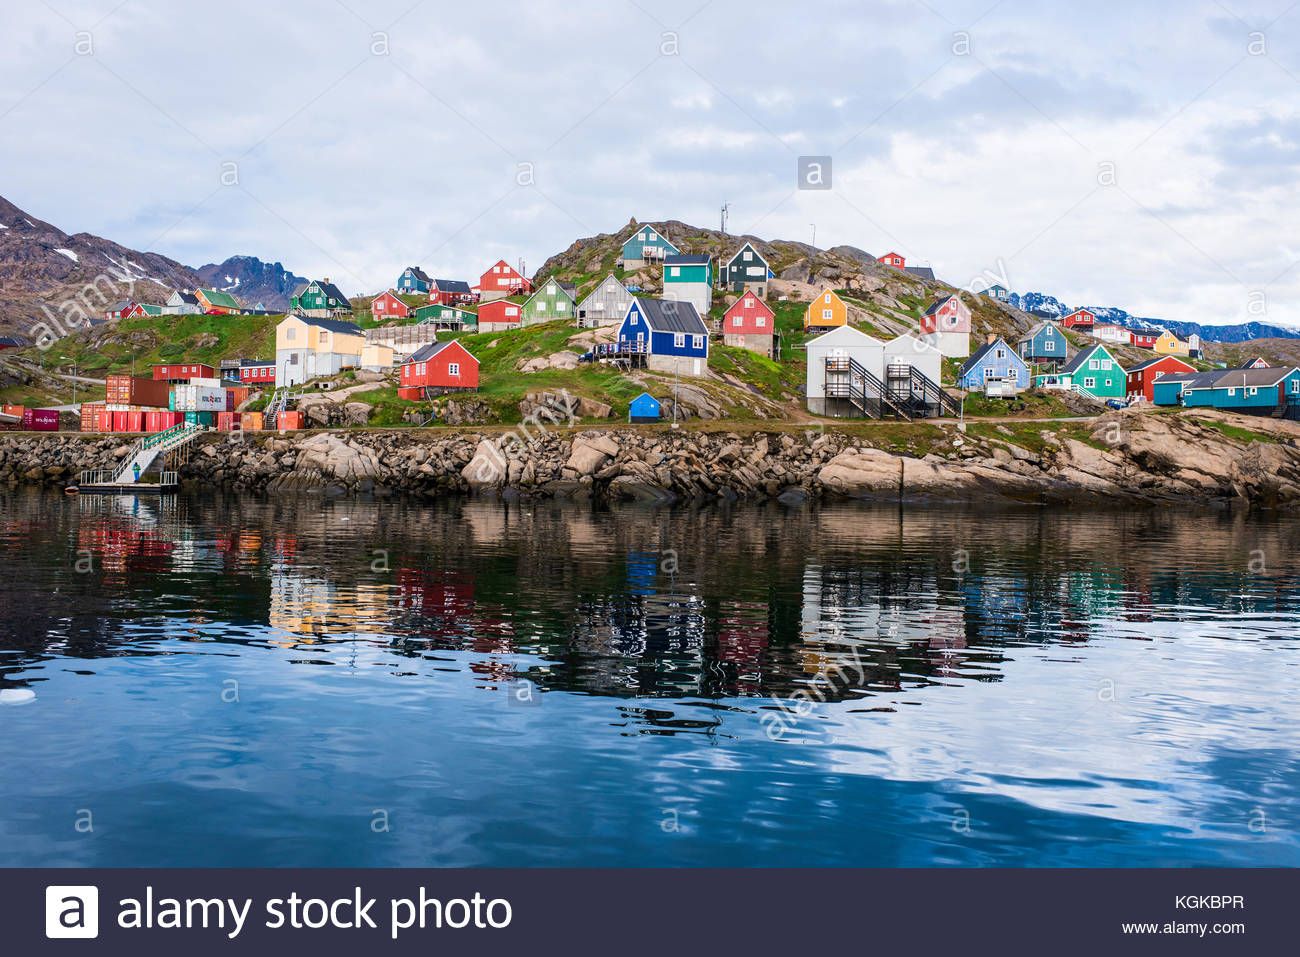 Lots of typical Greenlandic colorful houses on the shore of a fjord in summer. - Stock Image